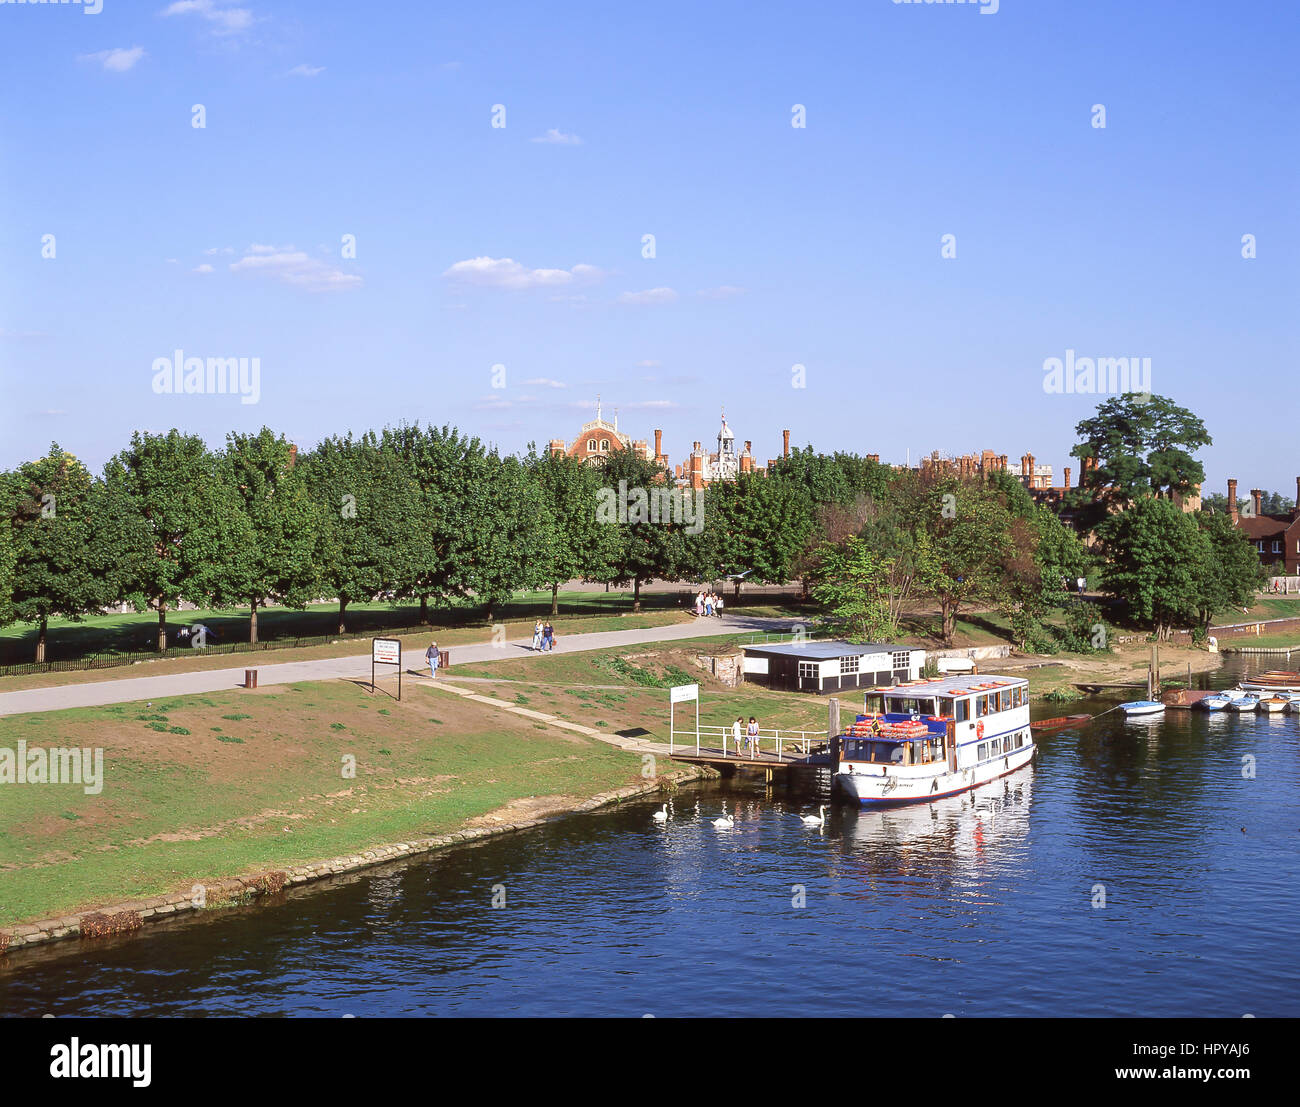 Ferry boat at Thames landing for Hampton Court Palace, Hampton, Borough of Richmond upon Thames, Greater London, - Stock Image